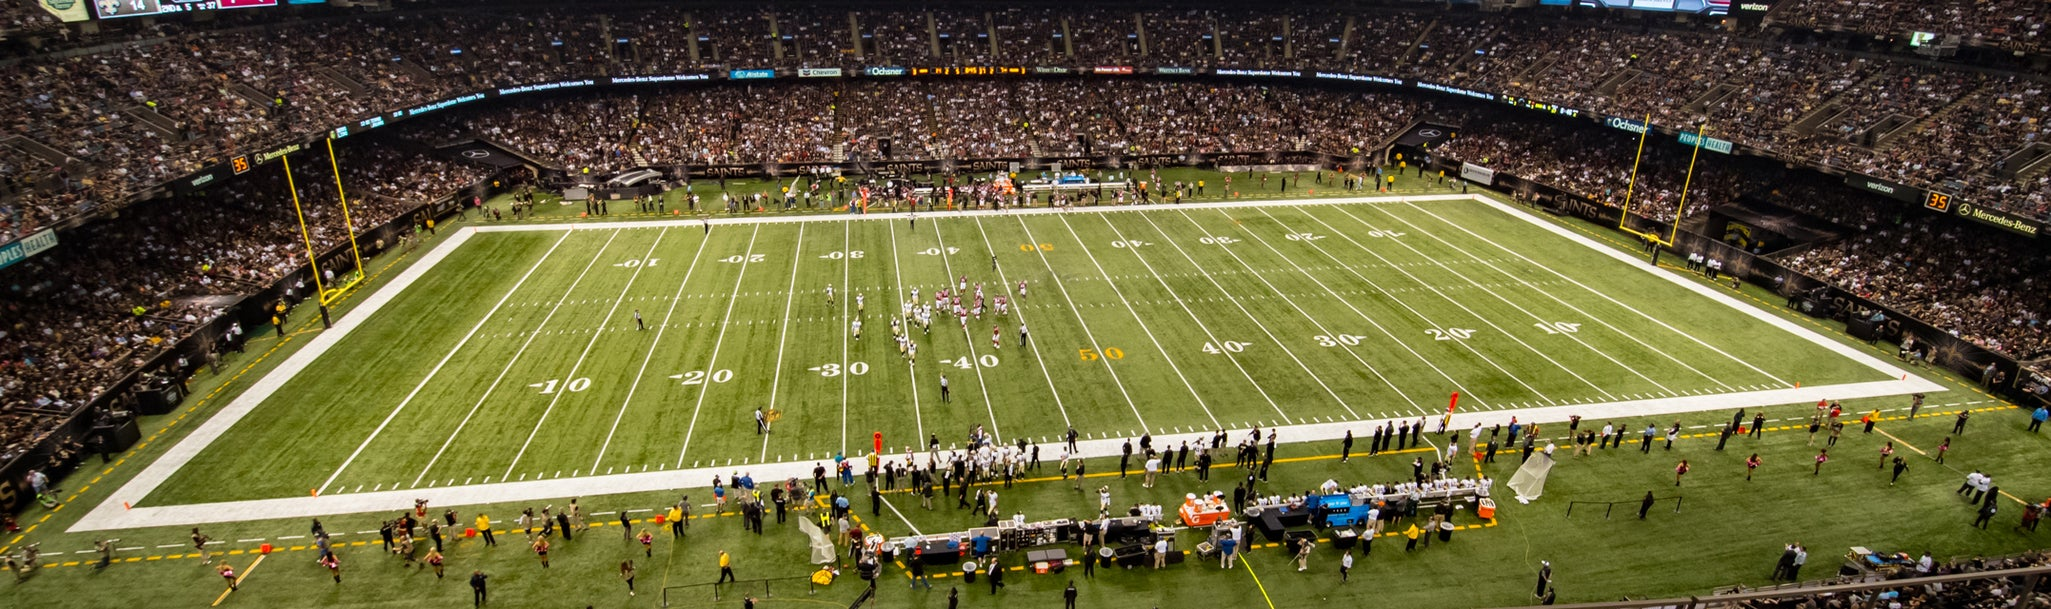 Seat view from Upper Box Sideline